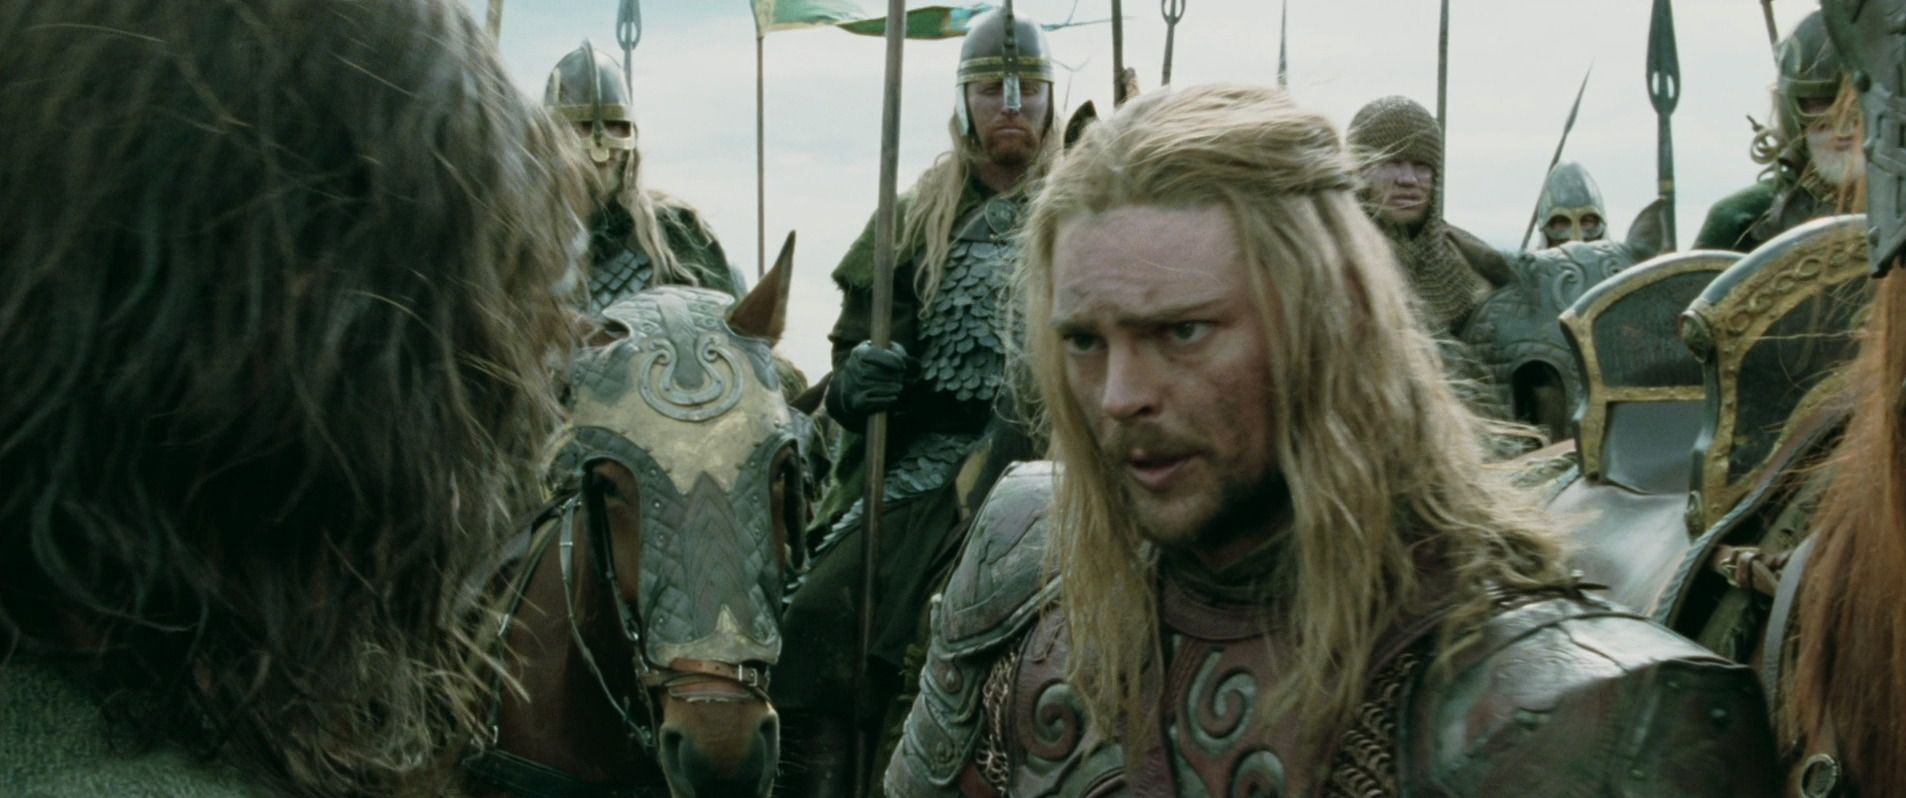 The Lord Of The Rings The Two Towers 2002 Movie Screencaps Com Lord Of The Rings The Two Towers Lord